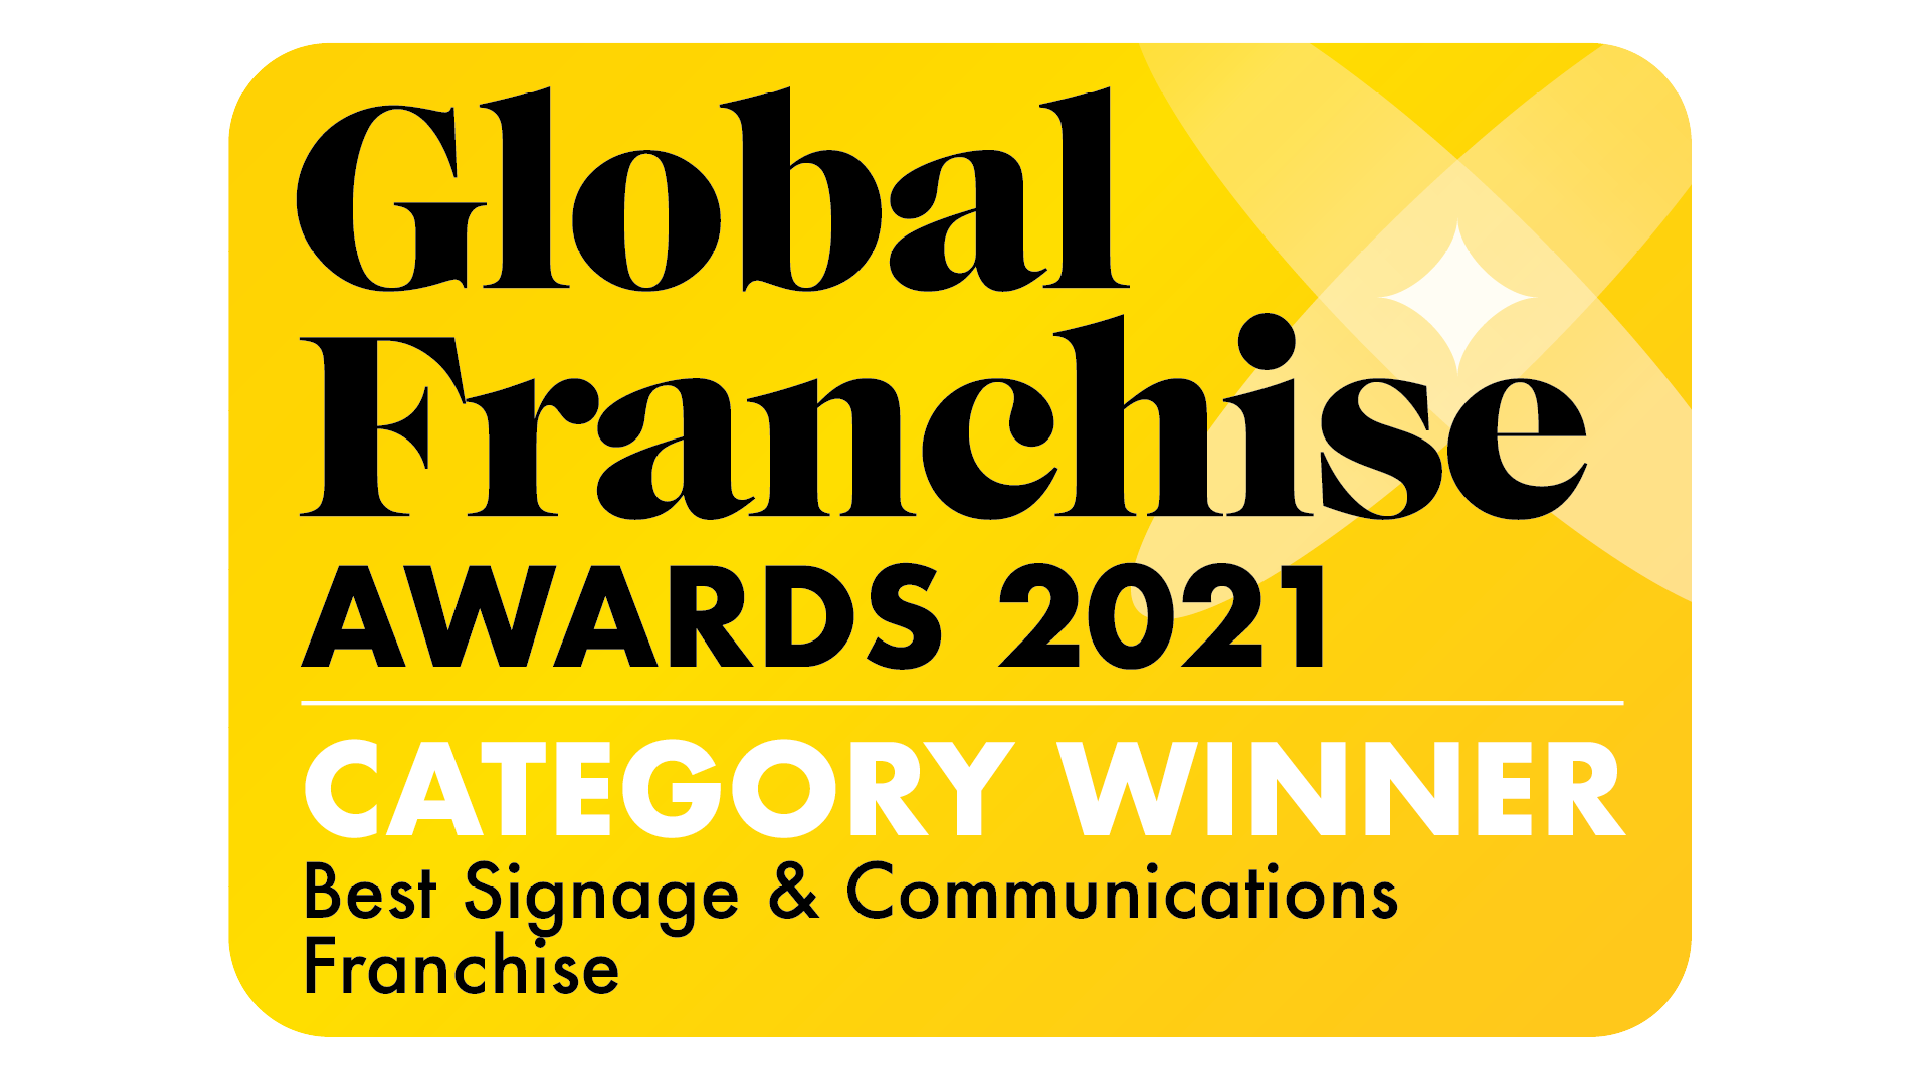 FASTSIGNS win at the Global Franchise 2021 Awards